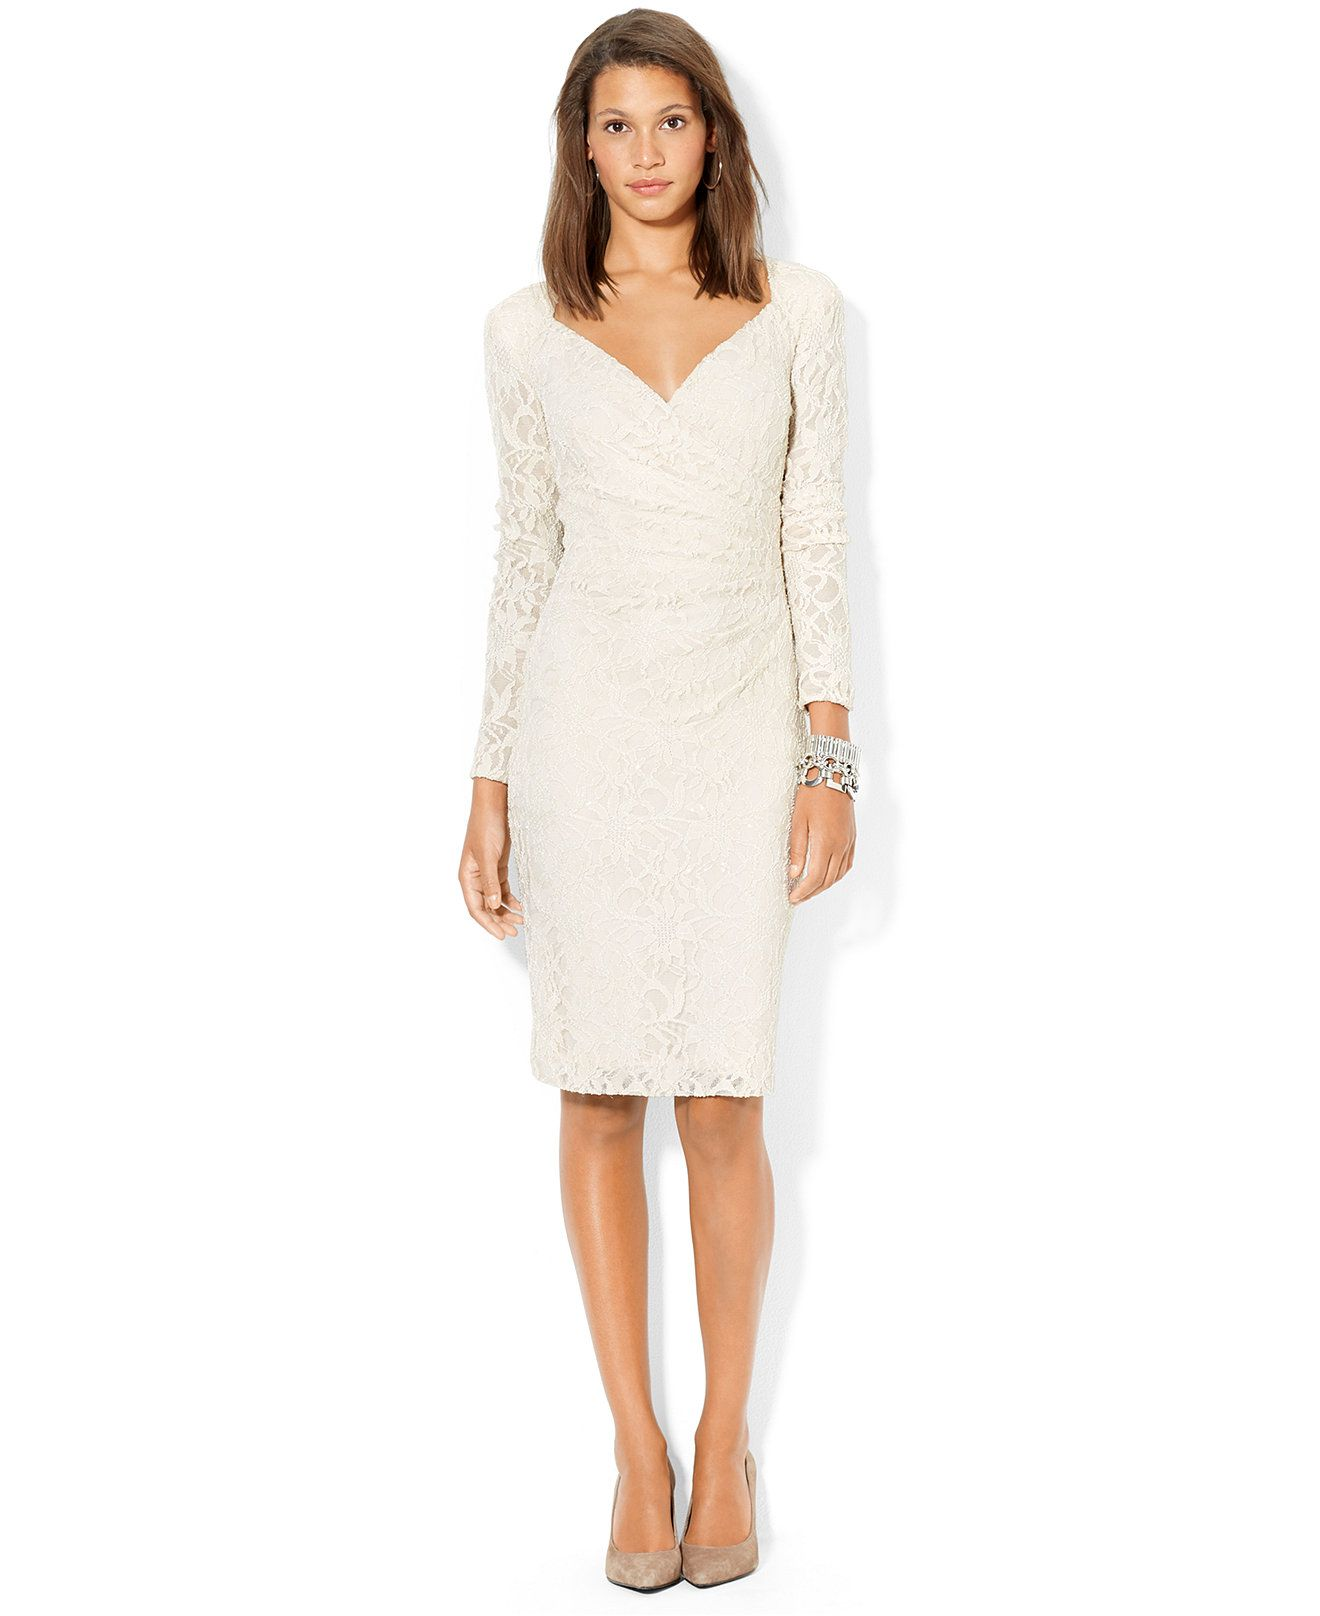 7561436ad4a Lauren Ralph Lauren Sequined-Lace Surplice Dress - Dresses - Women - Macy s